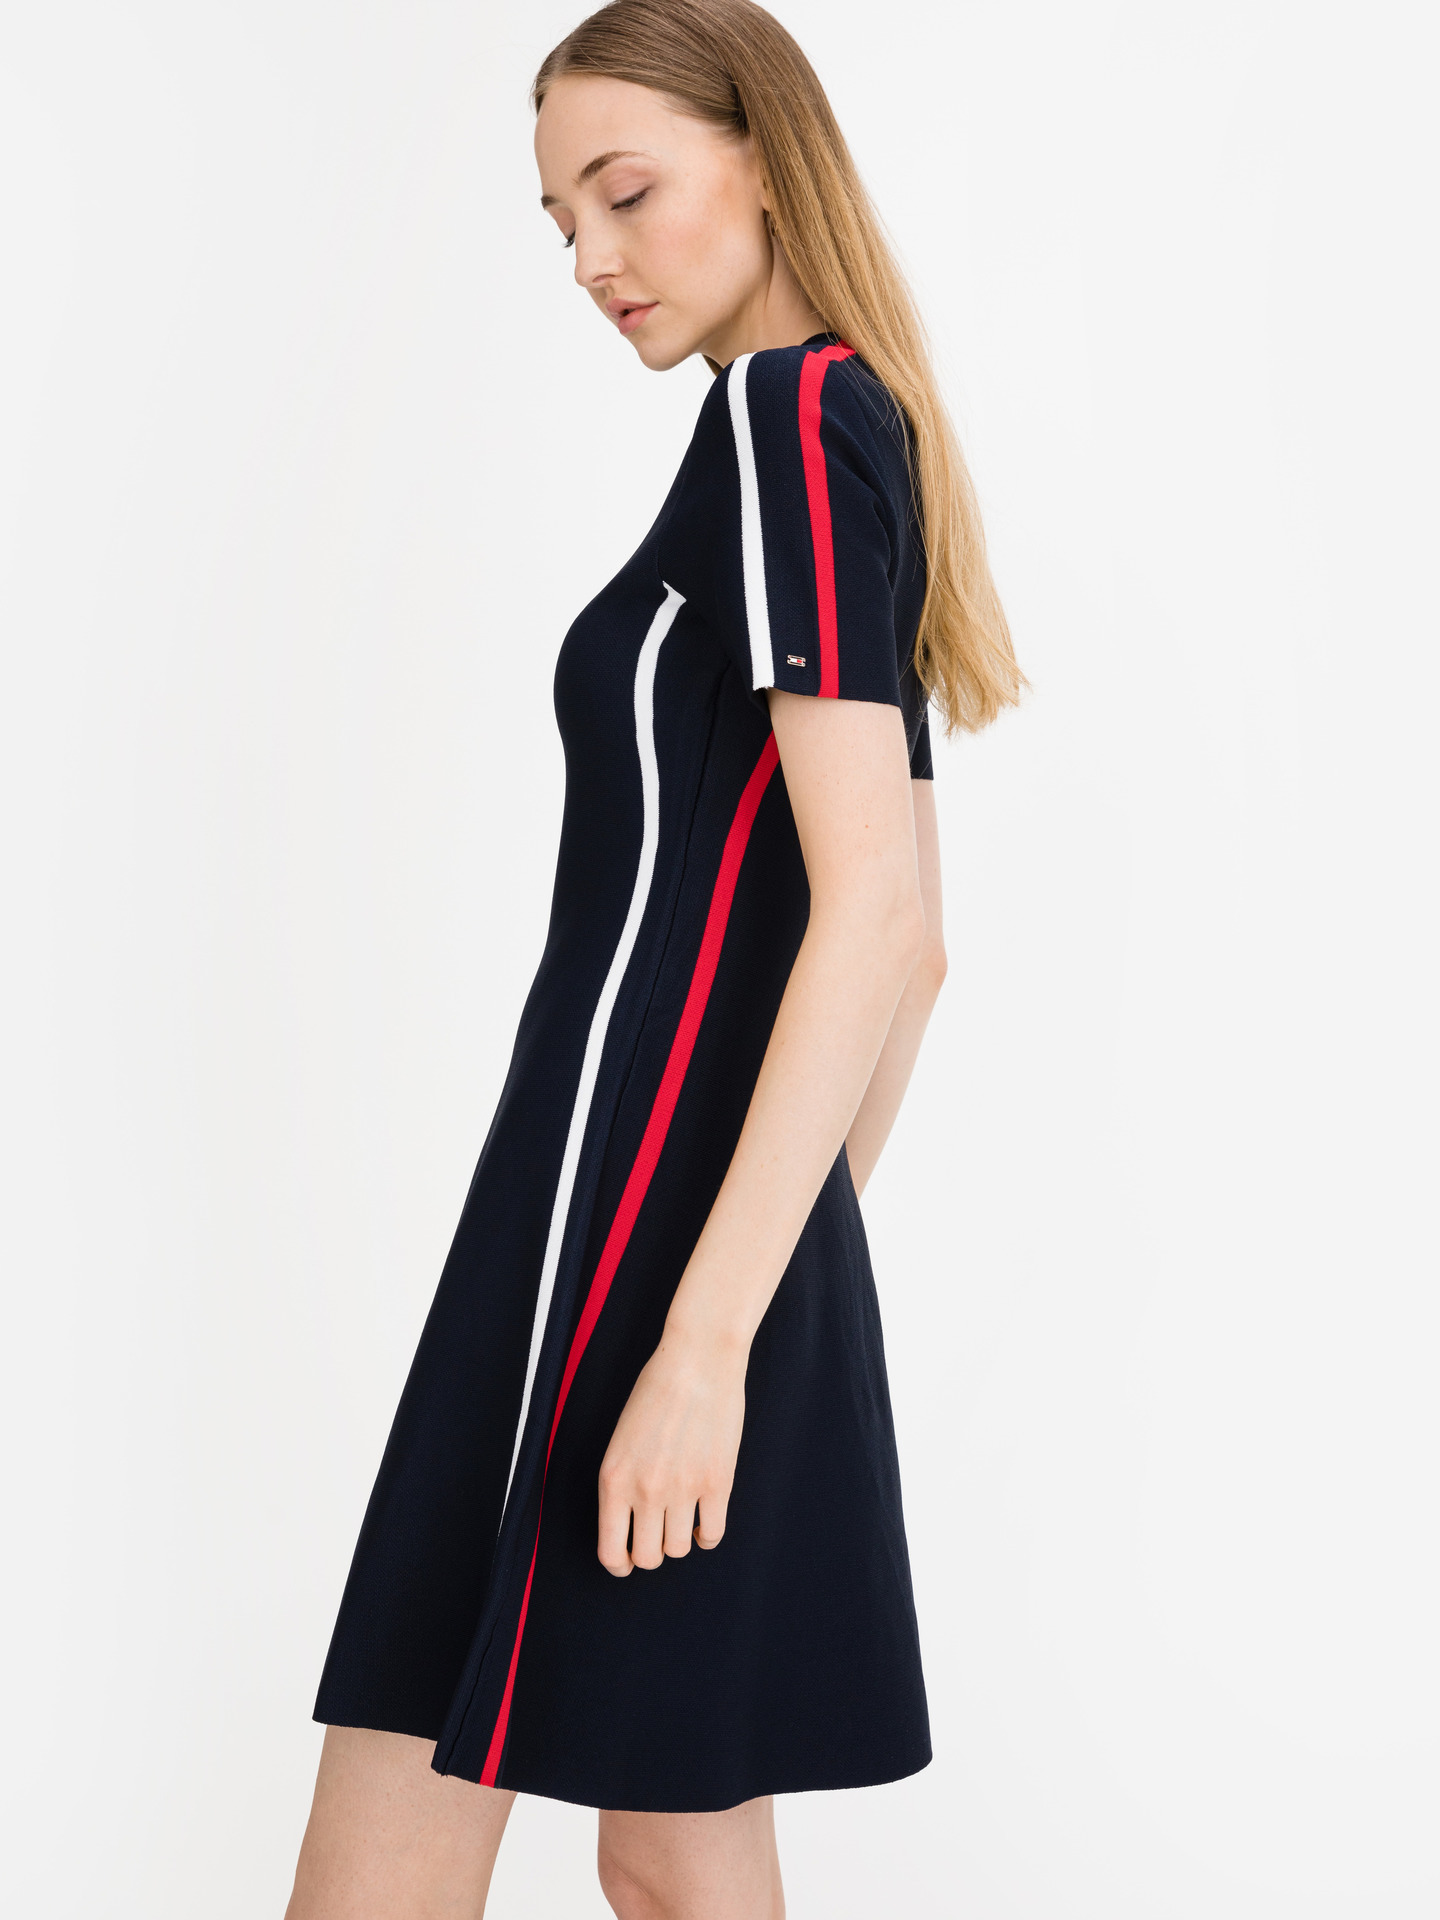 Colourblock Šaty Tommy Hilfiger Modrá